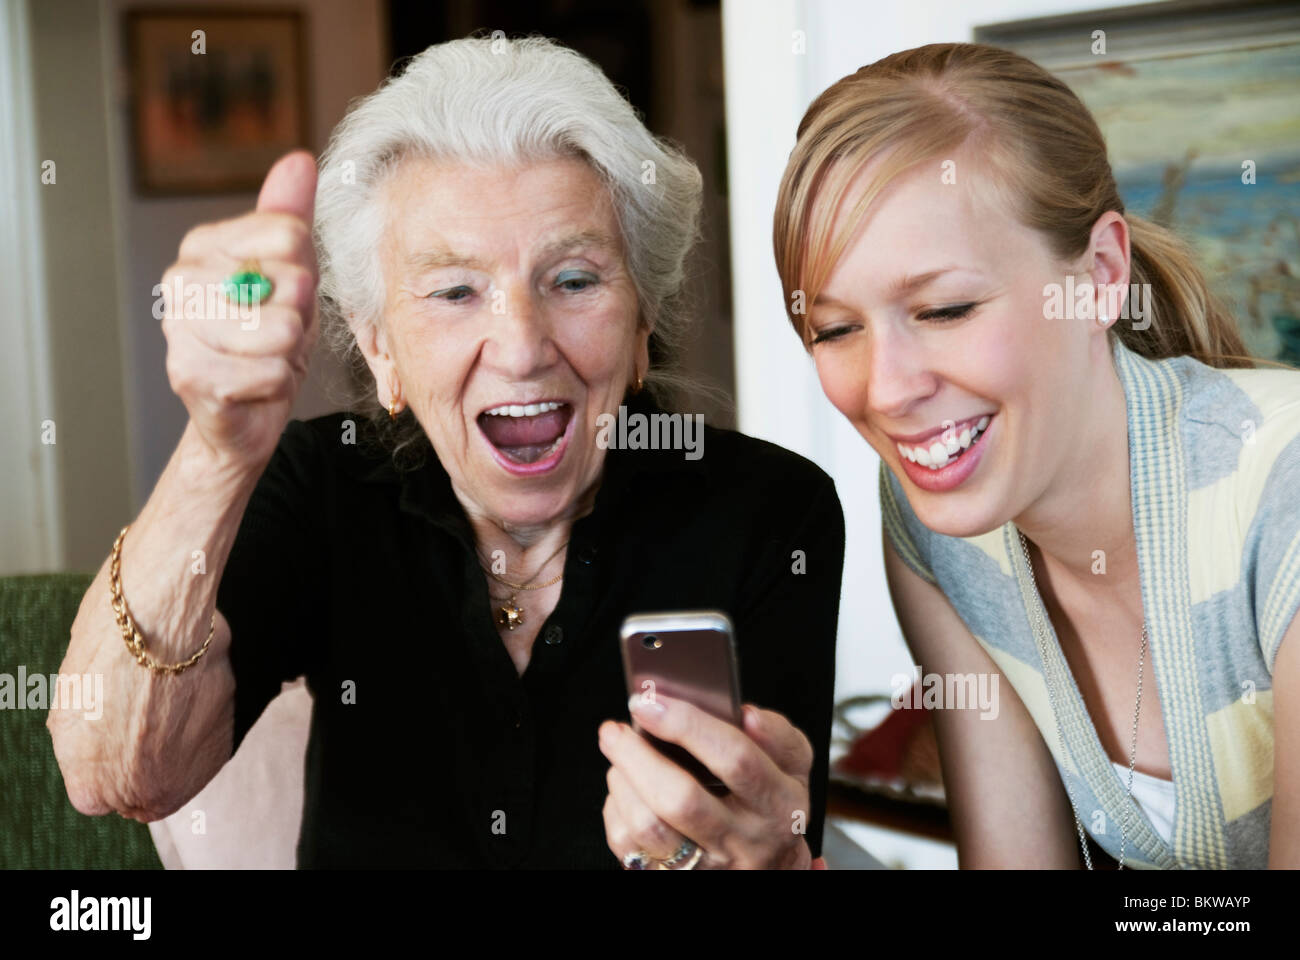 Elderly woman with cellphone beaming with joy - Stock Image